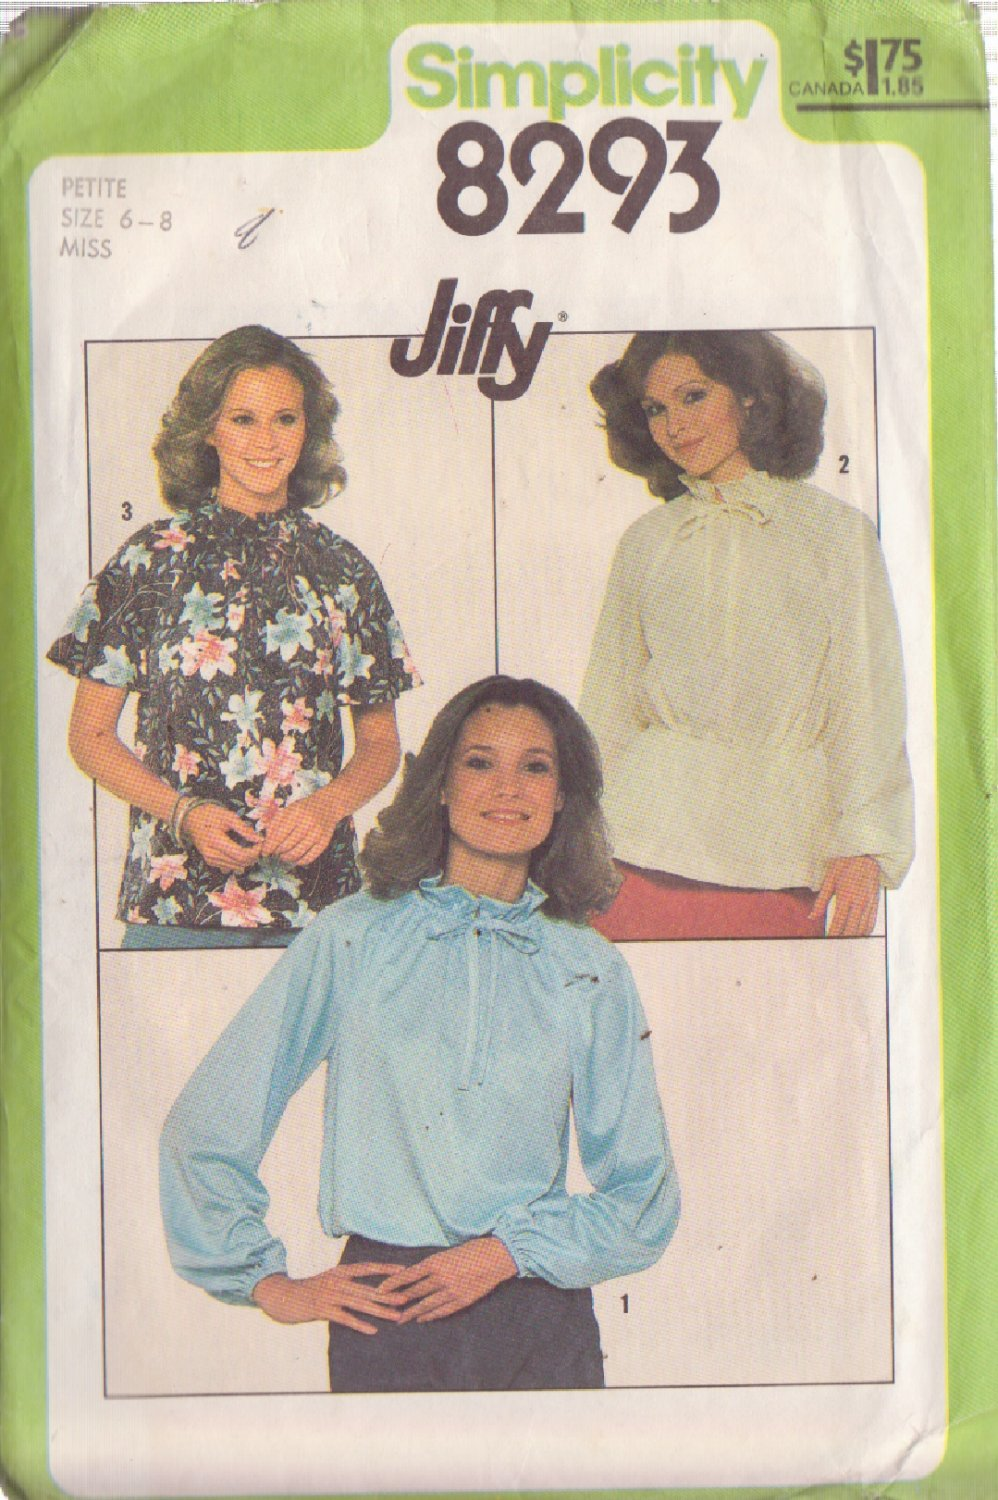 SIMPLICITY PATTERN 8293 MISSES PULLOVER BLOUSE IN 3 VARIATIONS SIZE 6/8